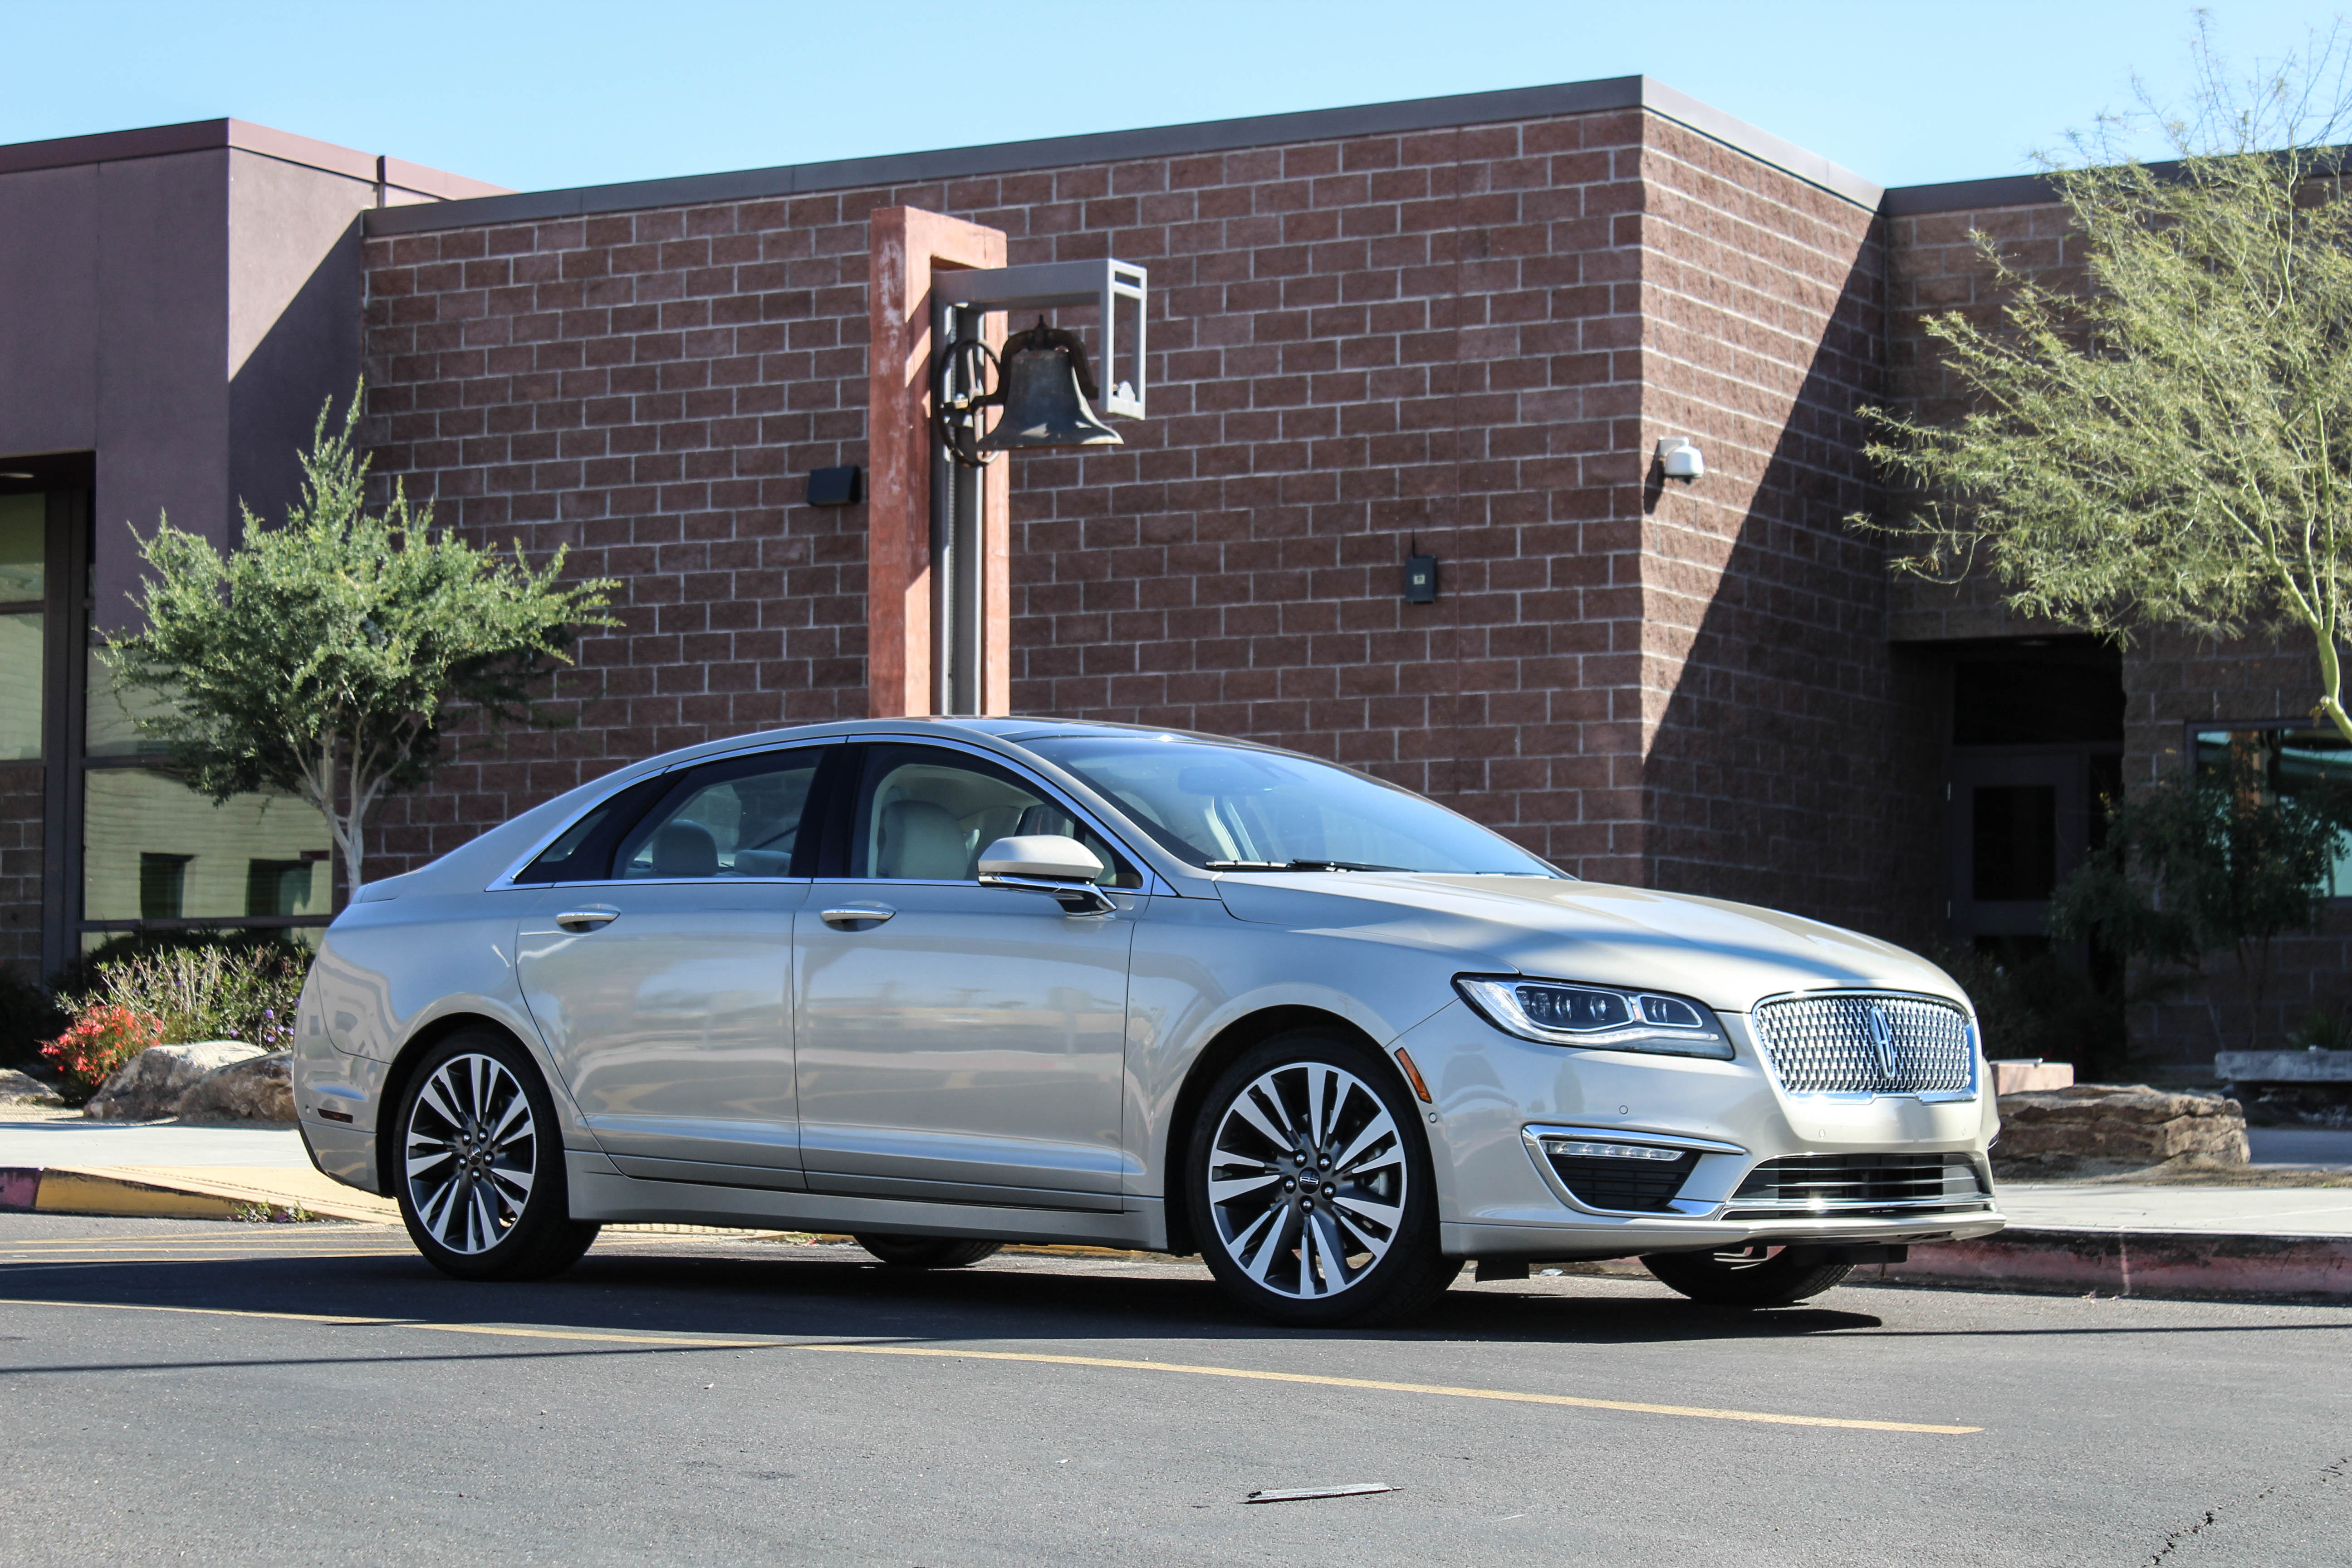 their sized lincoln premium speed when ford trimmed reserve detroit riding top titanium and always the line struggled fine class six mkz has that of with used mid luxury img to came fusion it blog